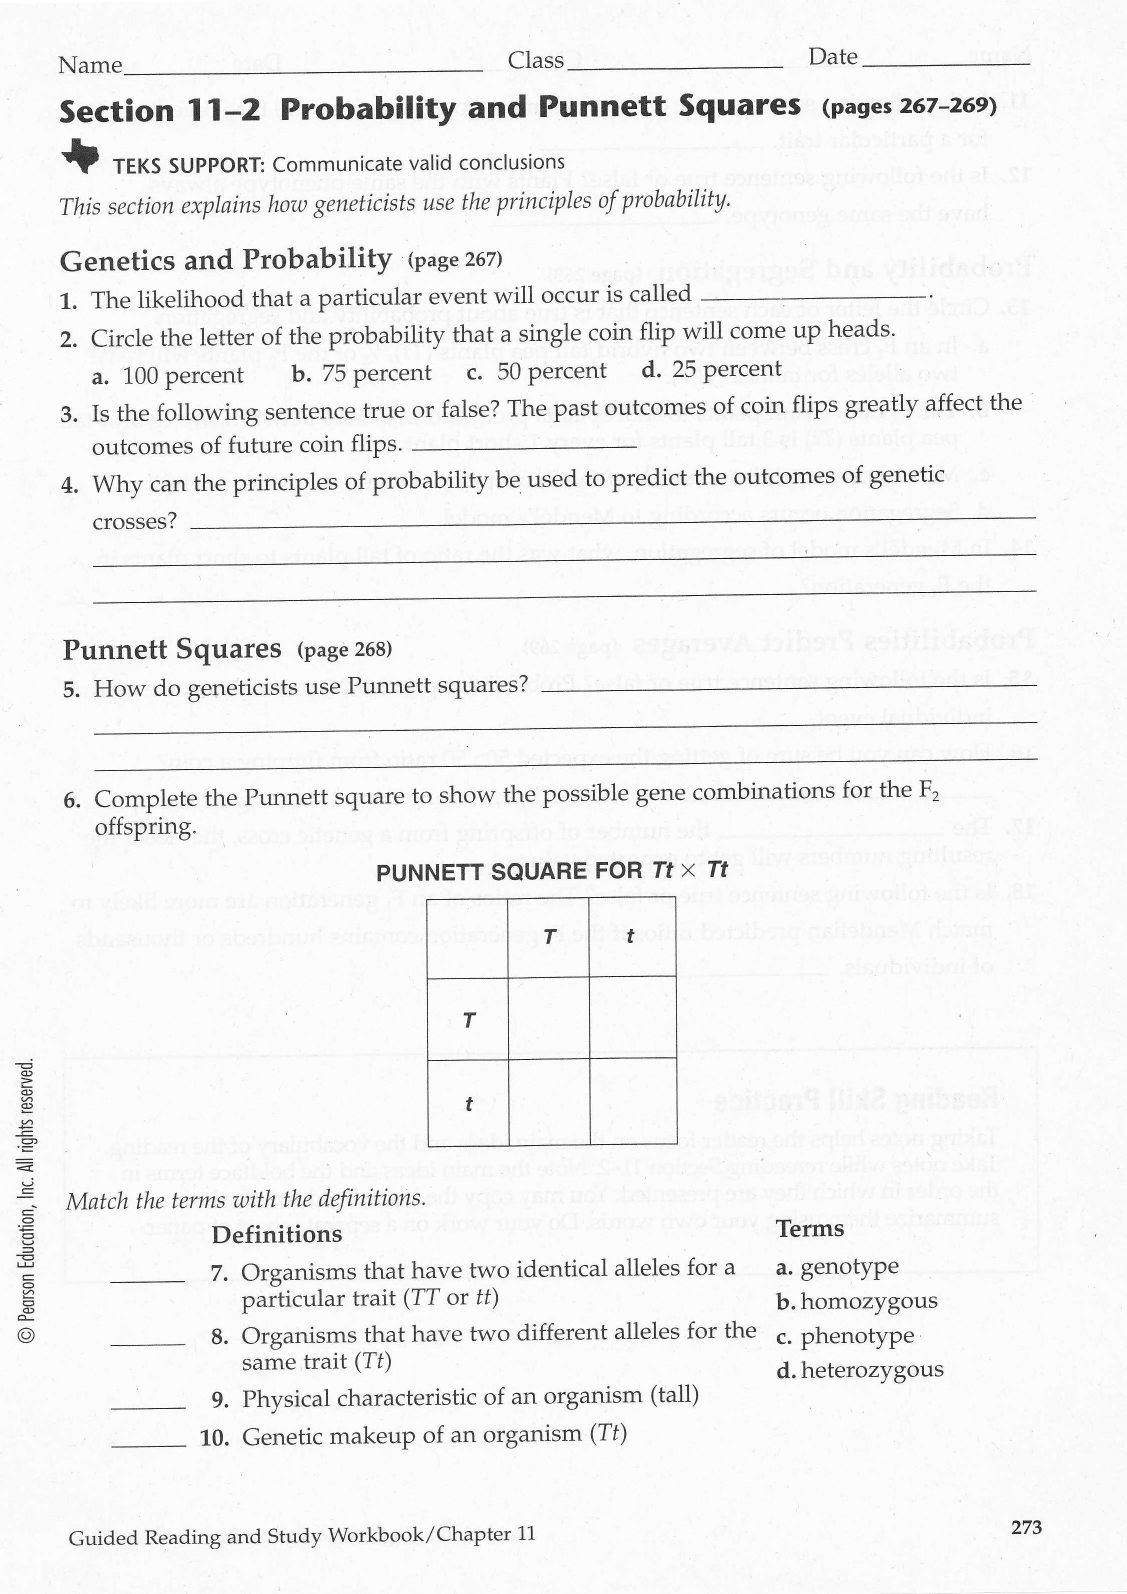 Bestseller Answer Key Chapter 11 Introduction To Genetics